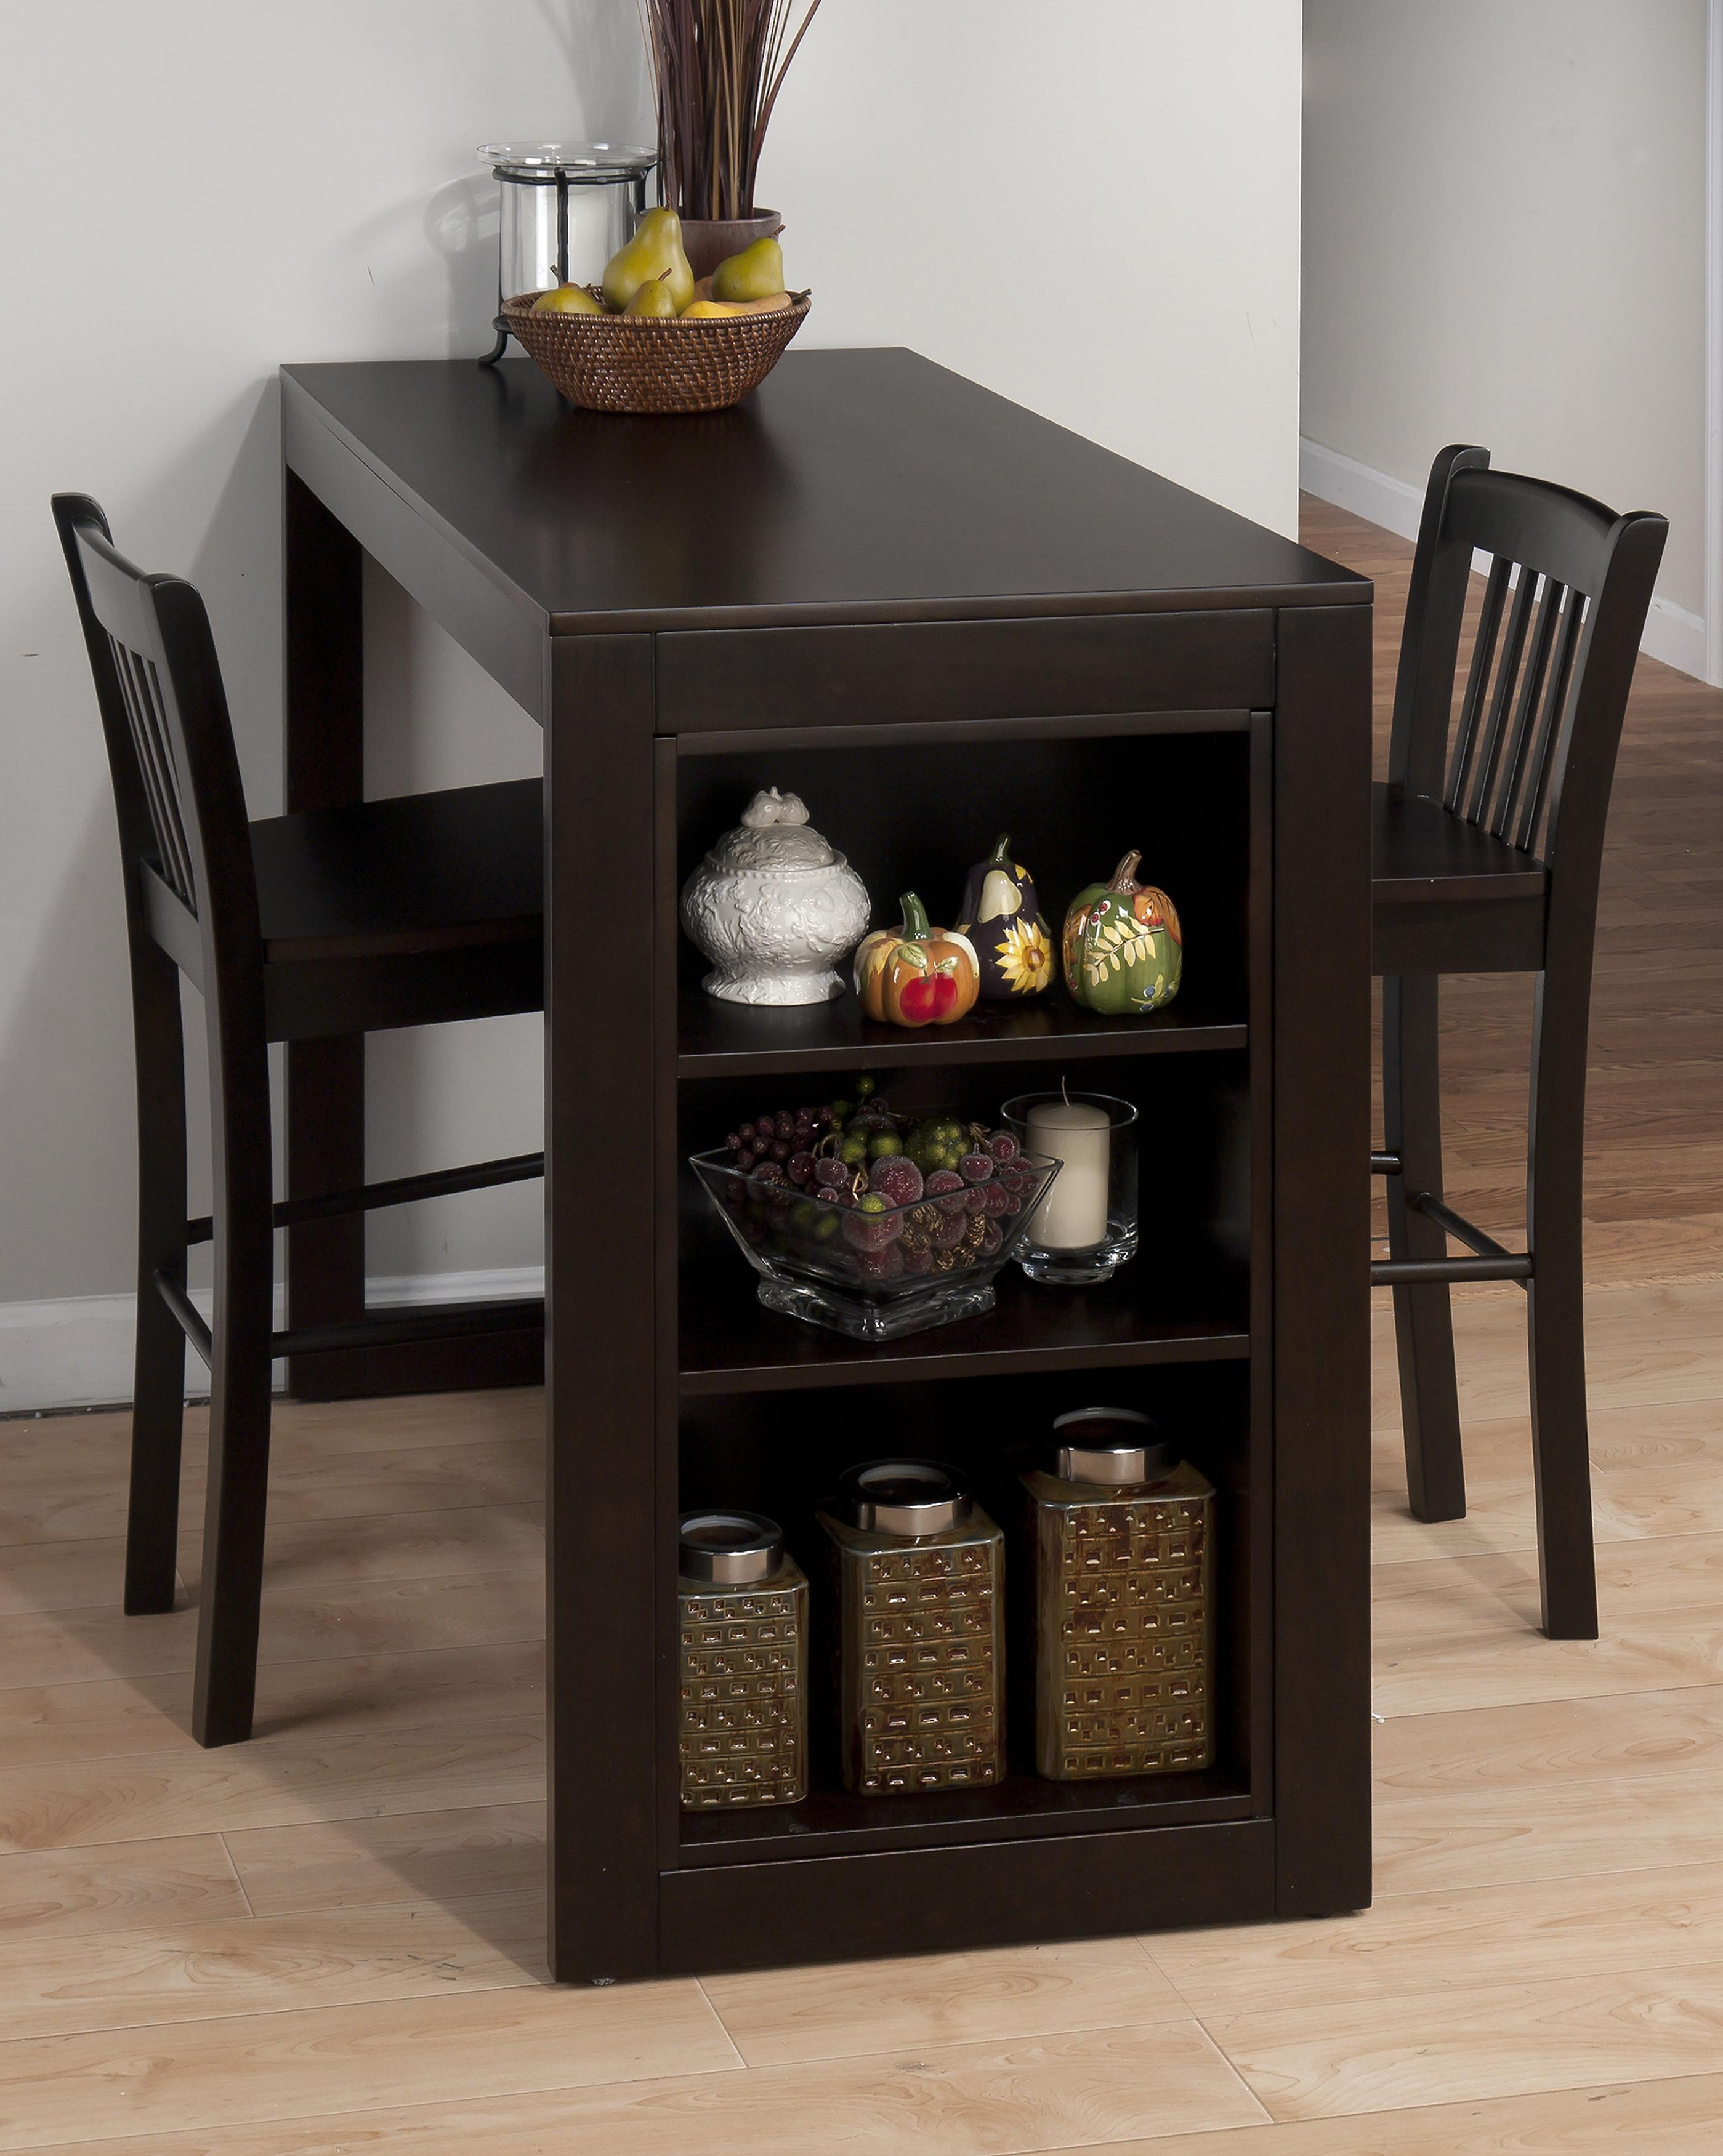 kitchen table with shelves | roselawnlutheran